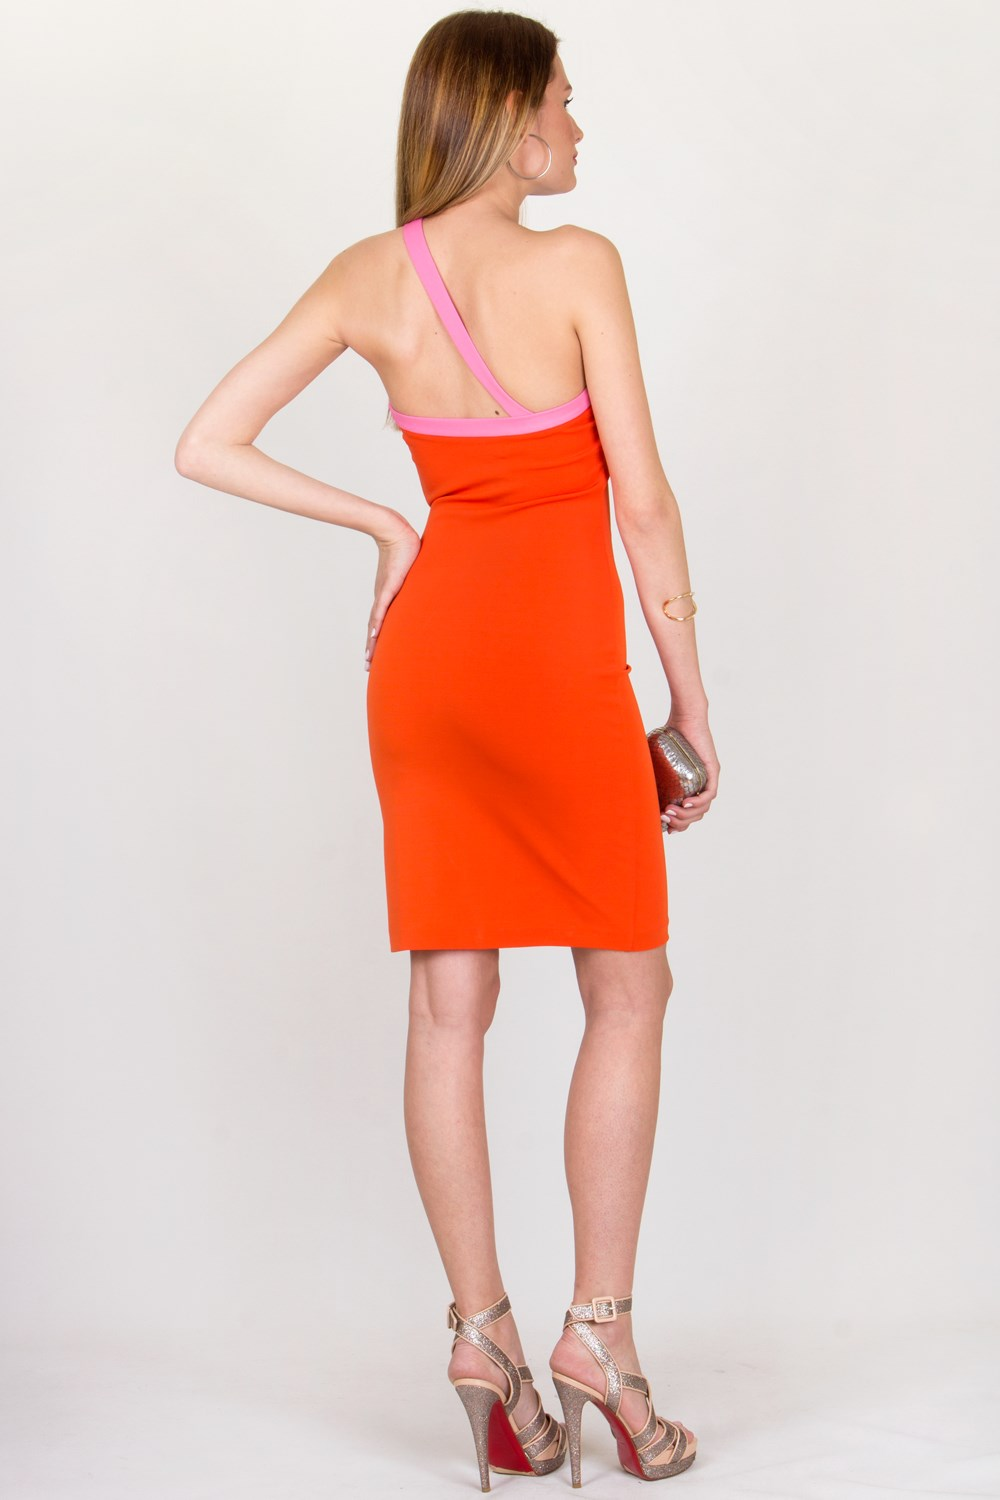 Orange-Pink Bodycon Dress / Size: XS - Fit: True to Size, Evening ...